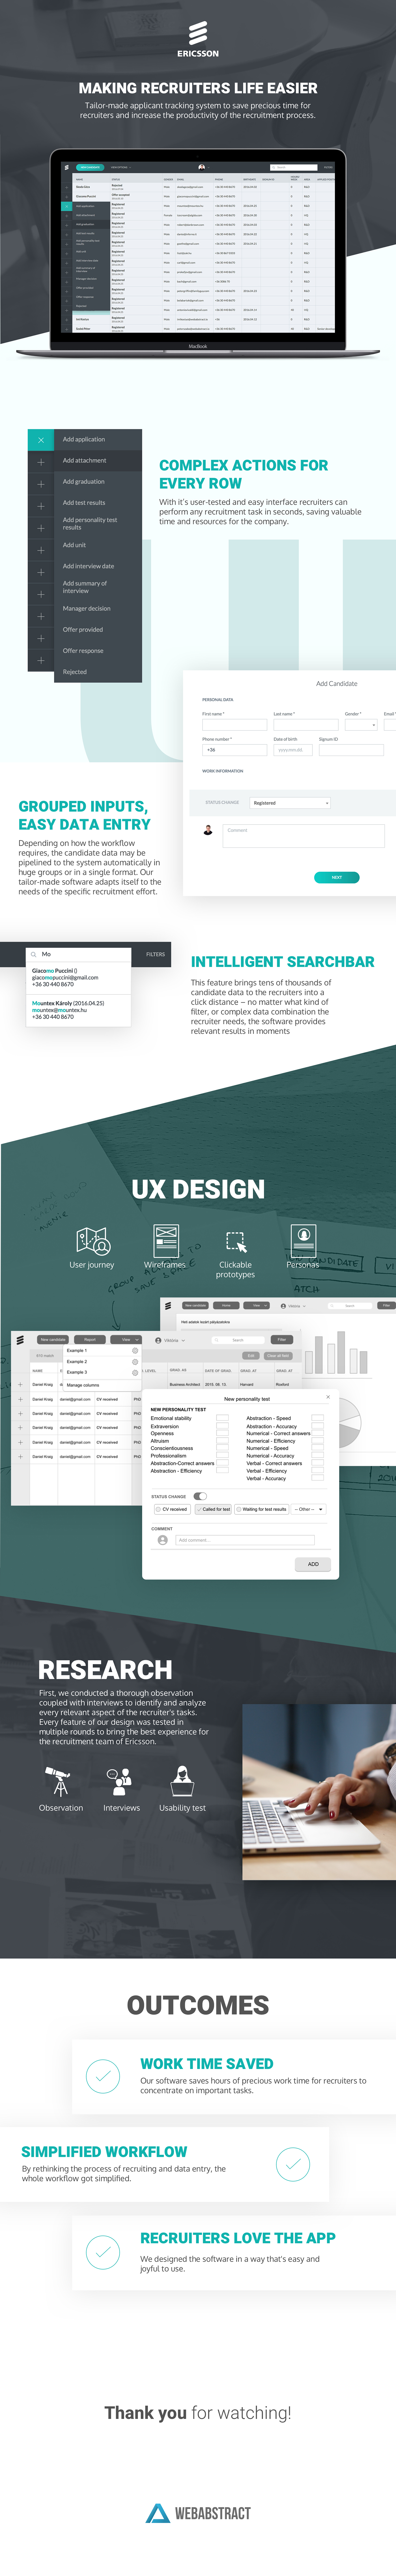 user experience UI ux HR Recruiting Usability